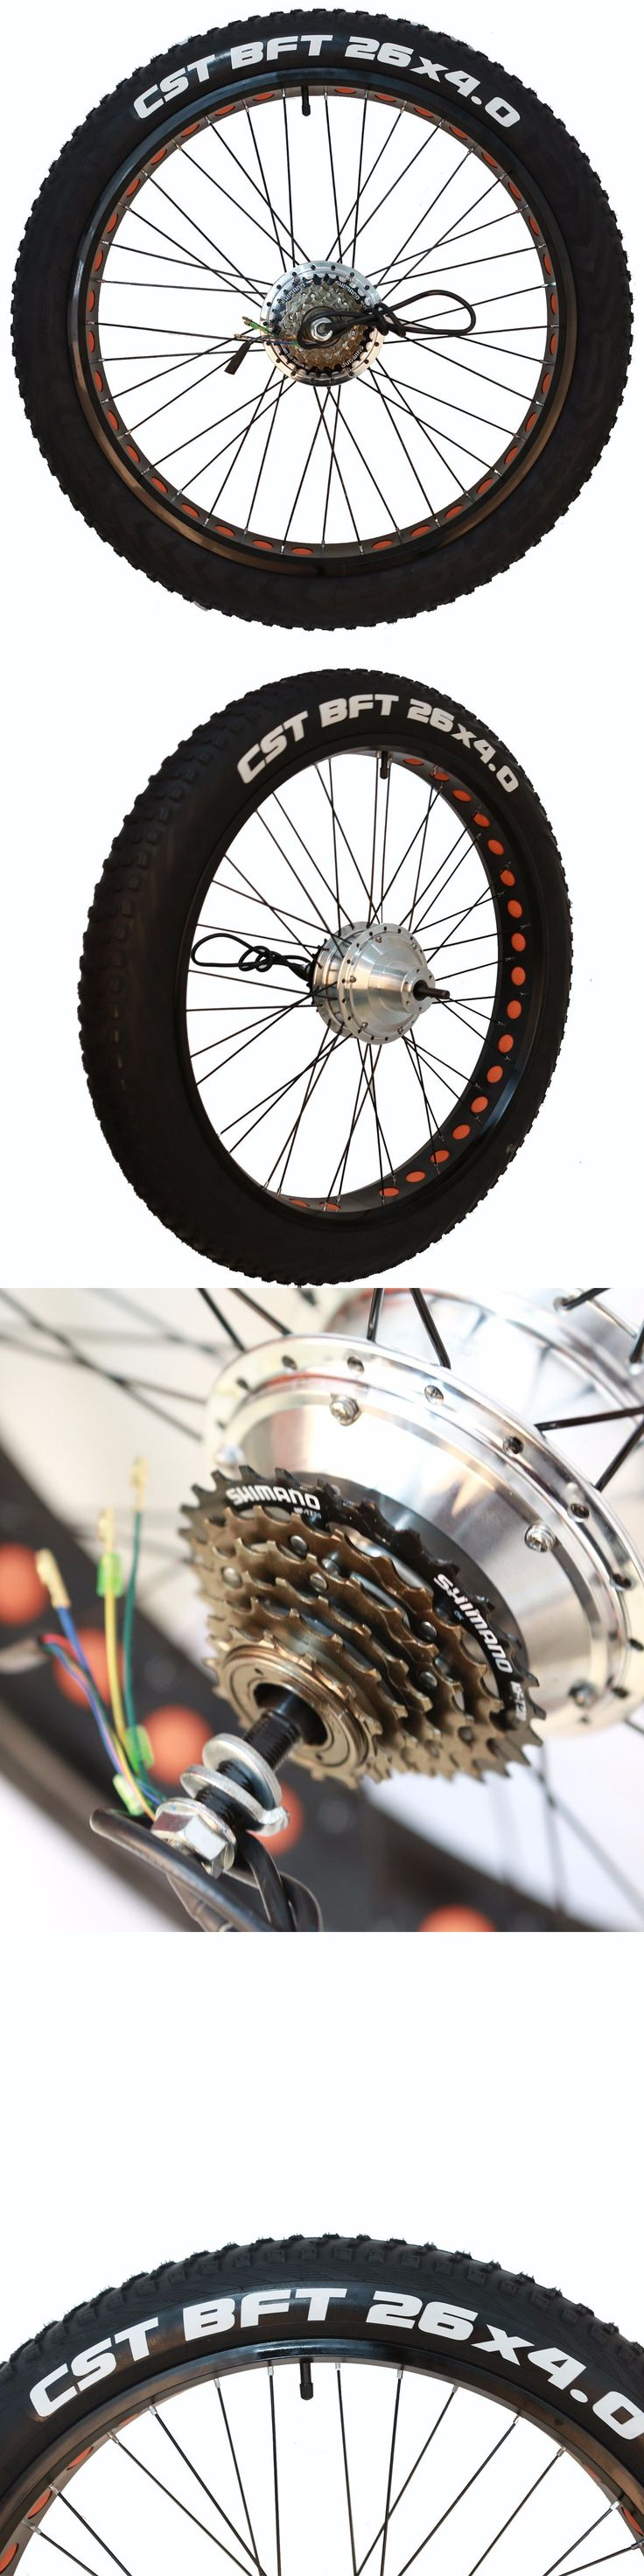 Electric Bicycles 74469: Nakto 300W Brushless 26 X 4.0 Fat Tire Rear Wheel With Motor For 26 Ebike -> BUY IT NOW ONLY: $199 on eBay!